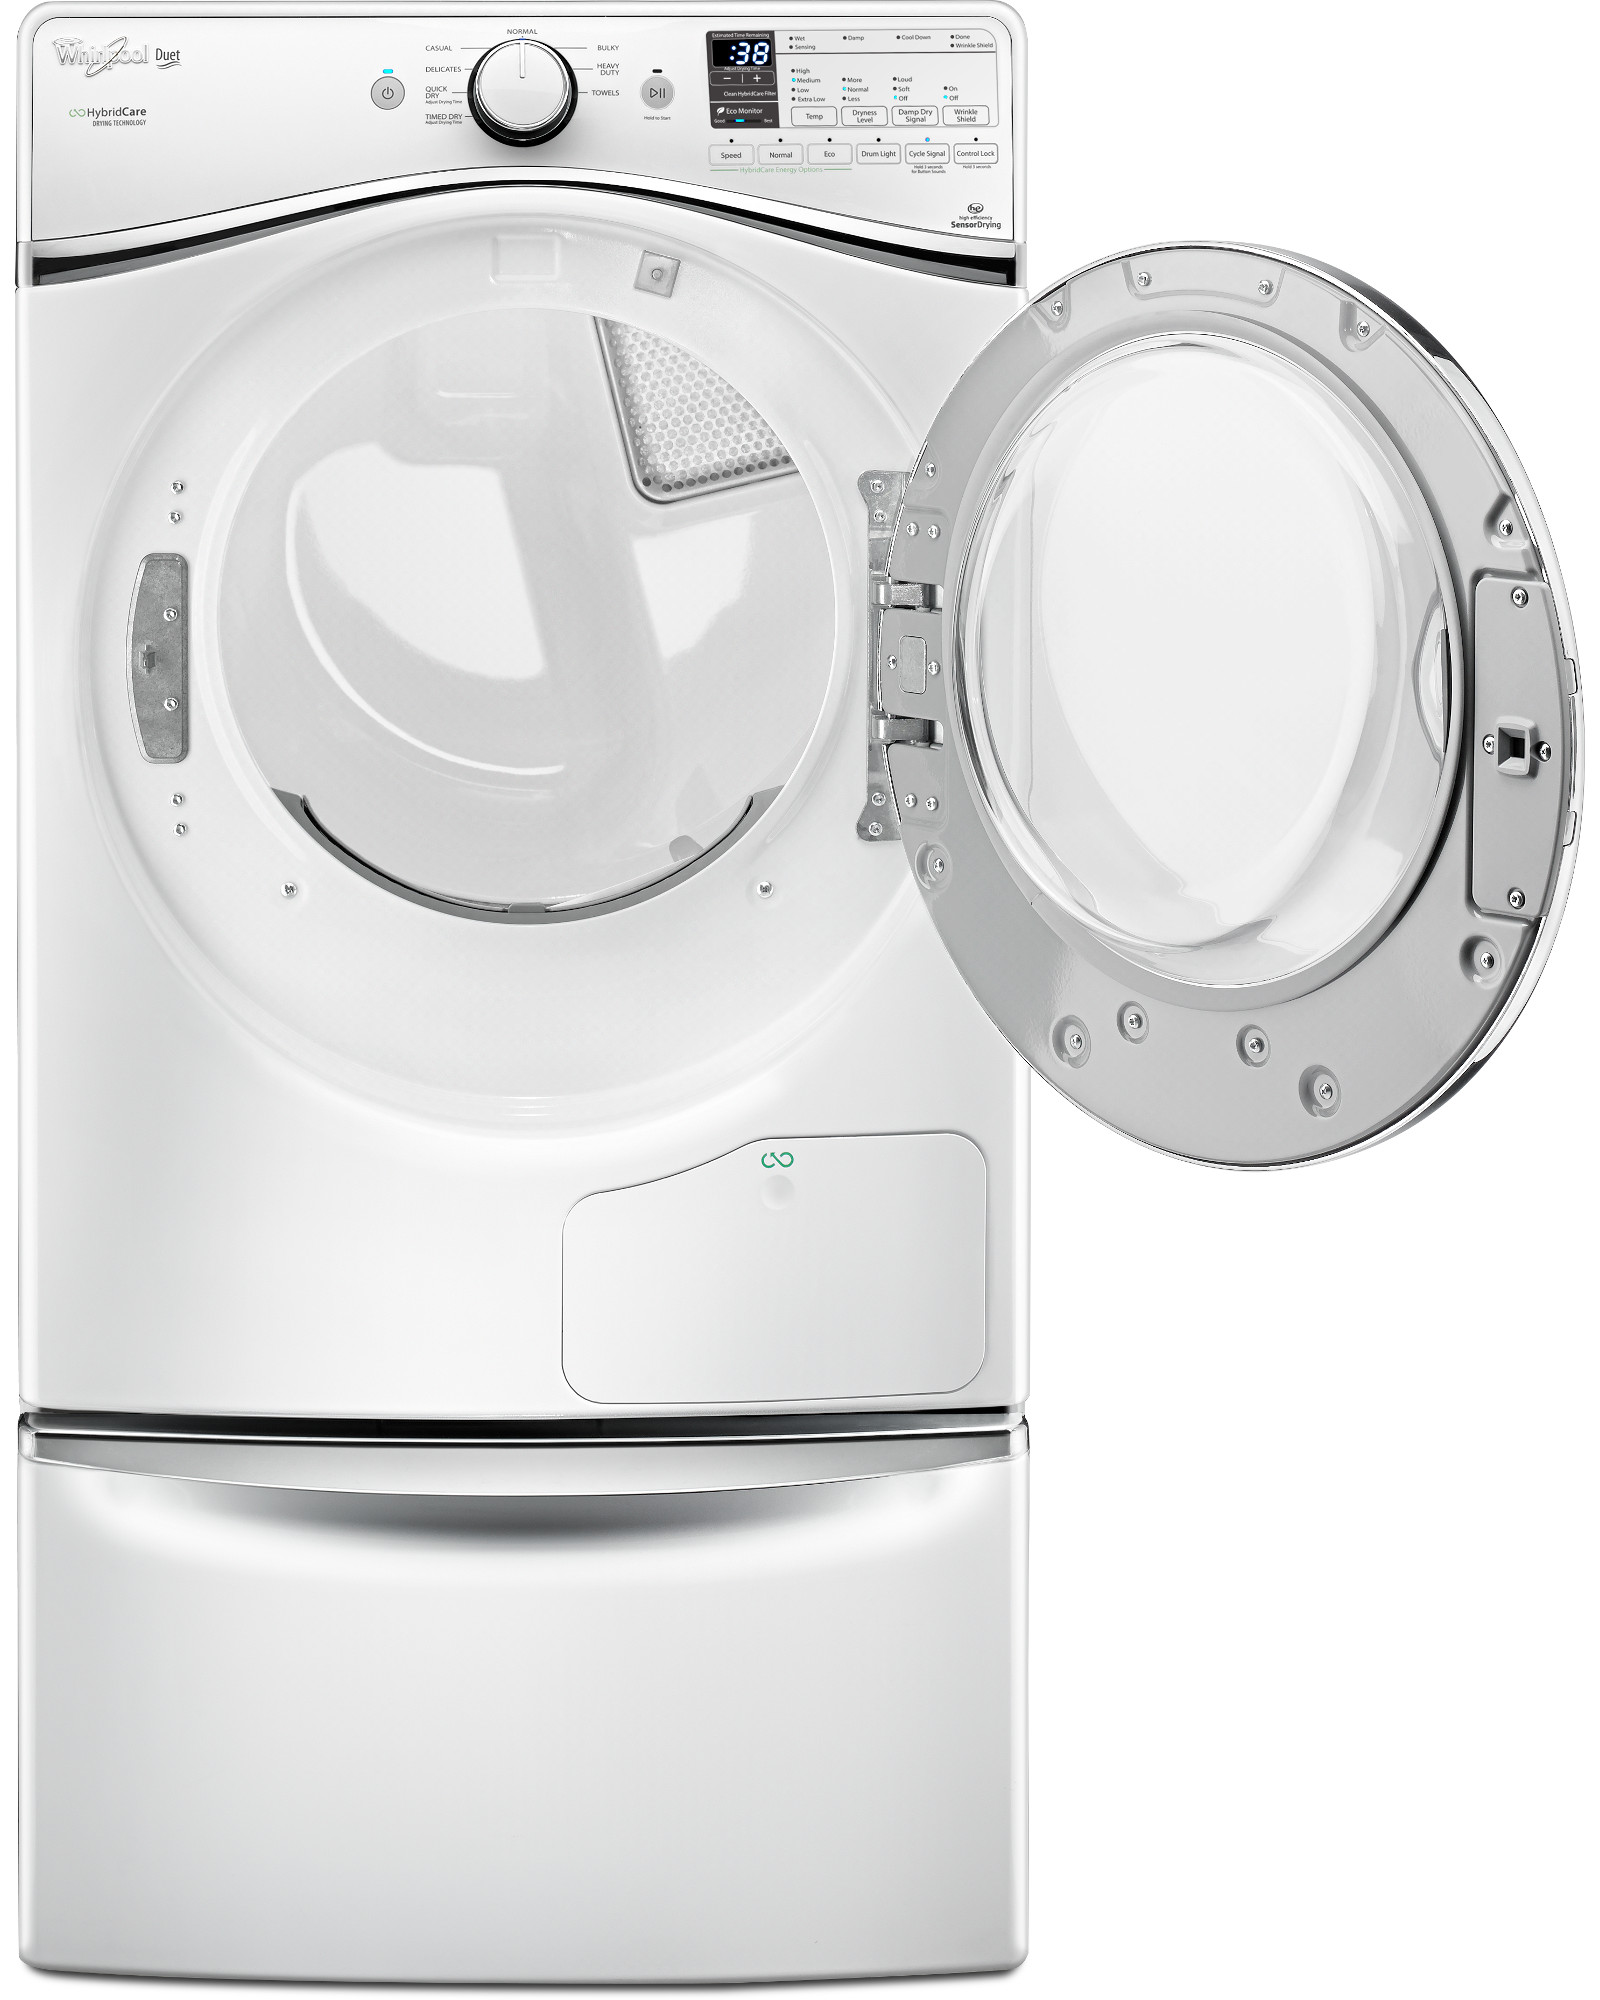 Whirlpool WED99HEDW 7.3 cu. ft. HybridCare™ Duet® Electric Dryer w/ Heat Pump Technology - White